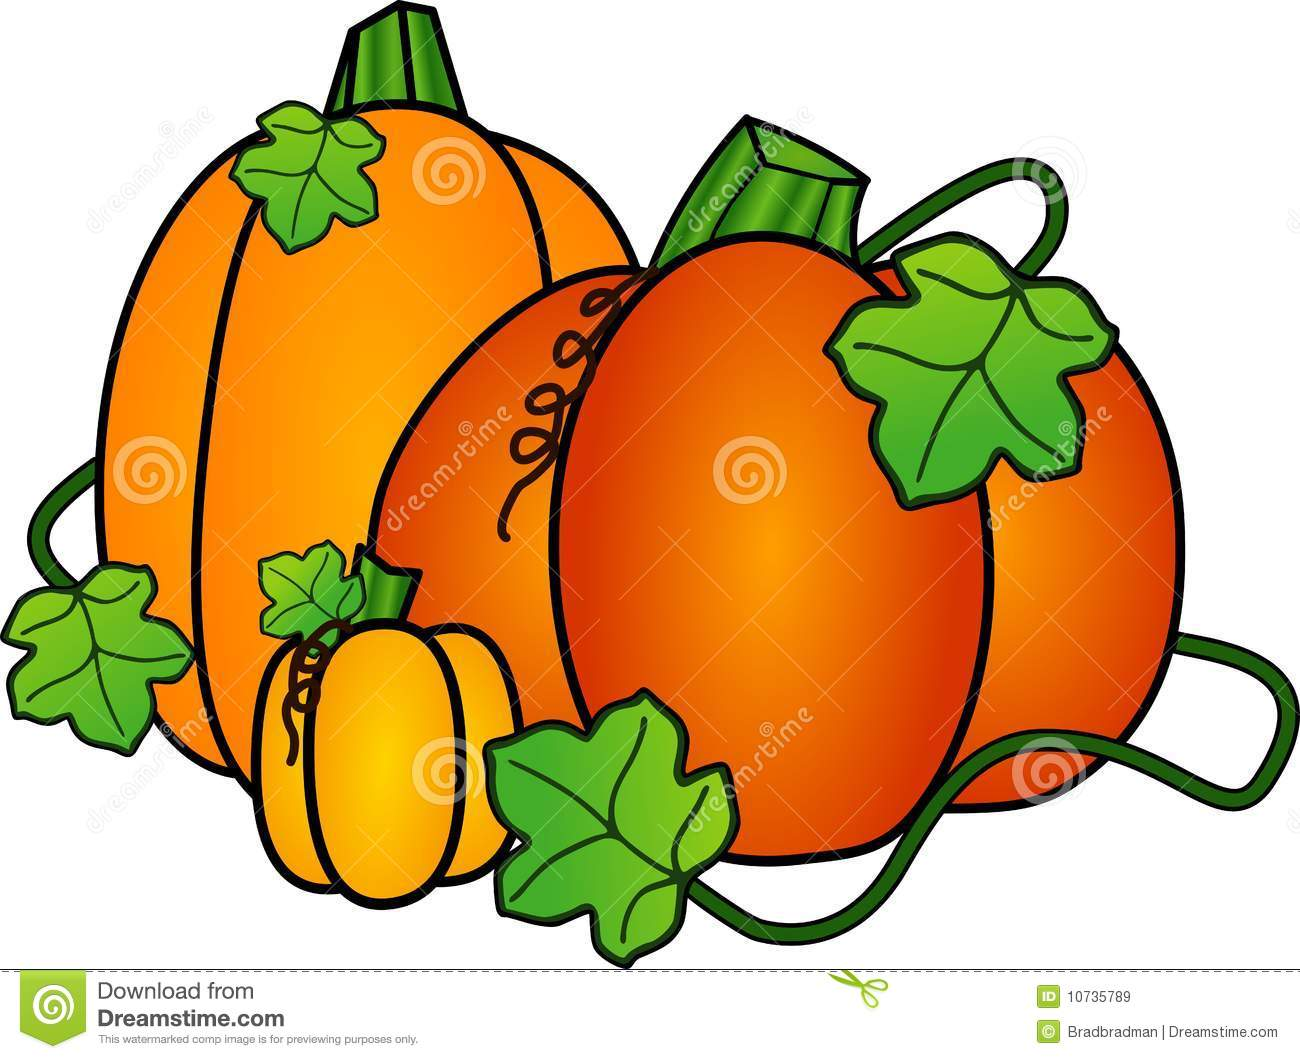 black cat halloween pumpkins clipart panda free clipart images rh clipartpanda com free clip art pumpkins on the vine free clip art pumpkin leaves